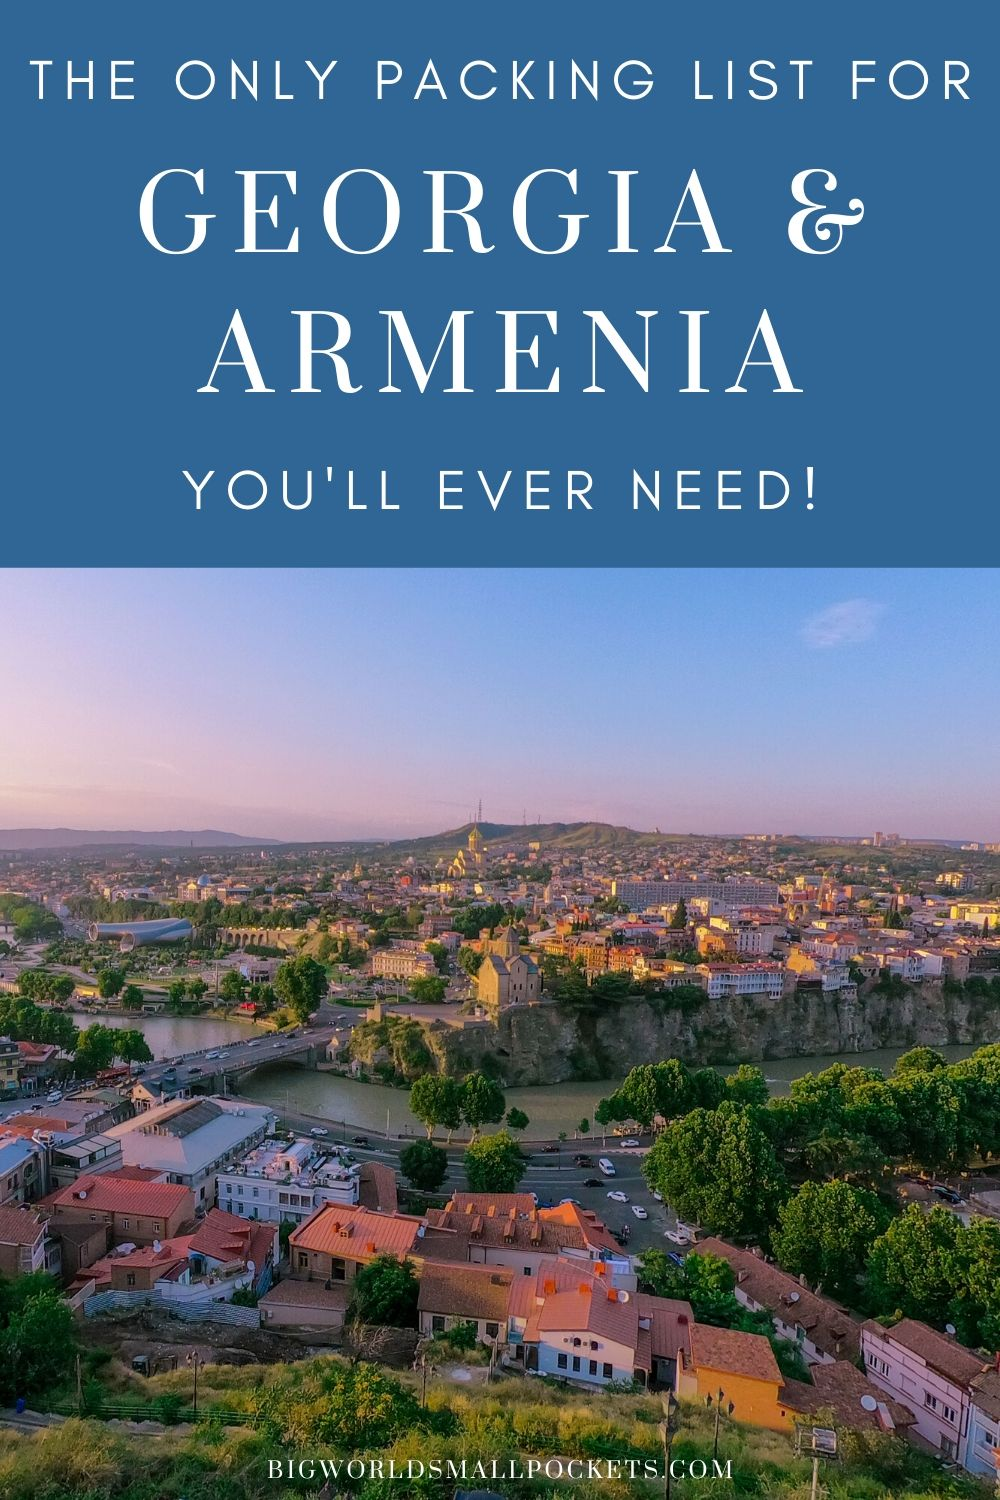 The Only Packing List for Georgia and Armenia You'll Ever Need!